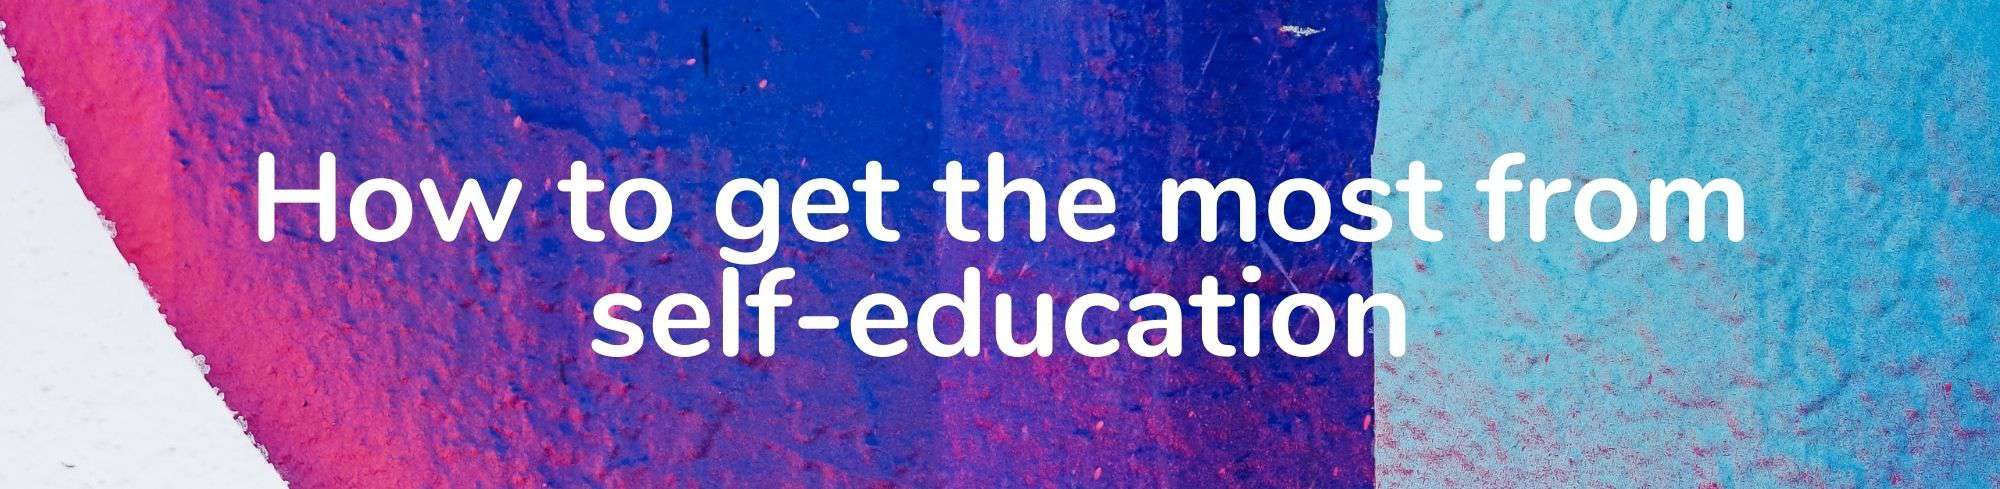 How to get the most from self-education